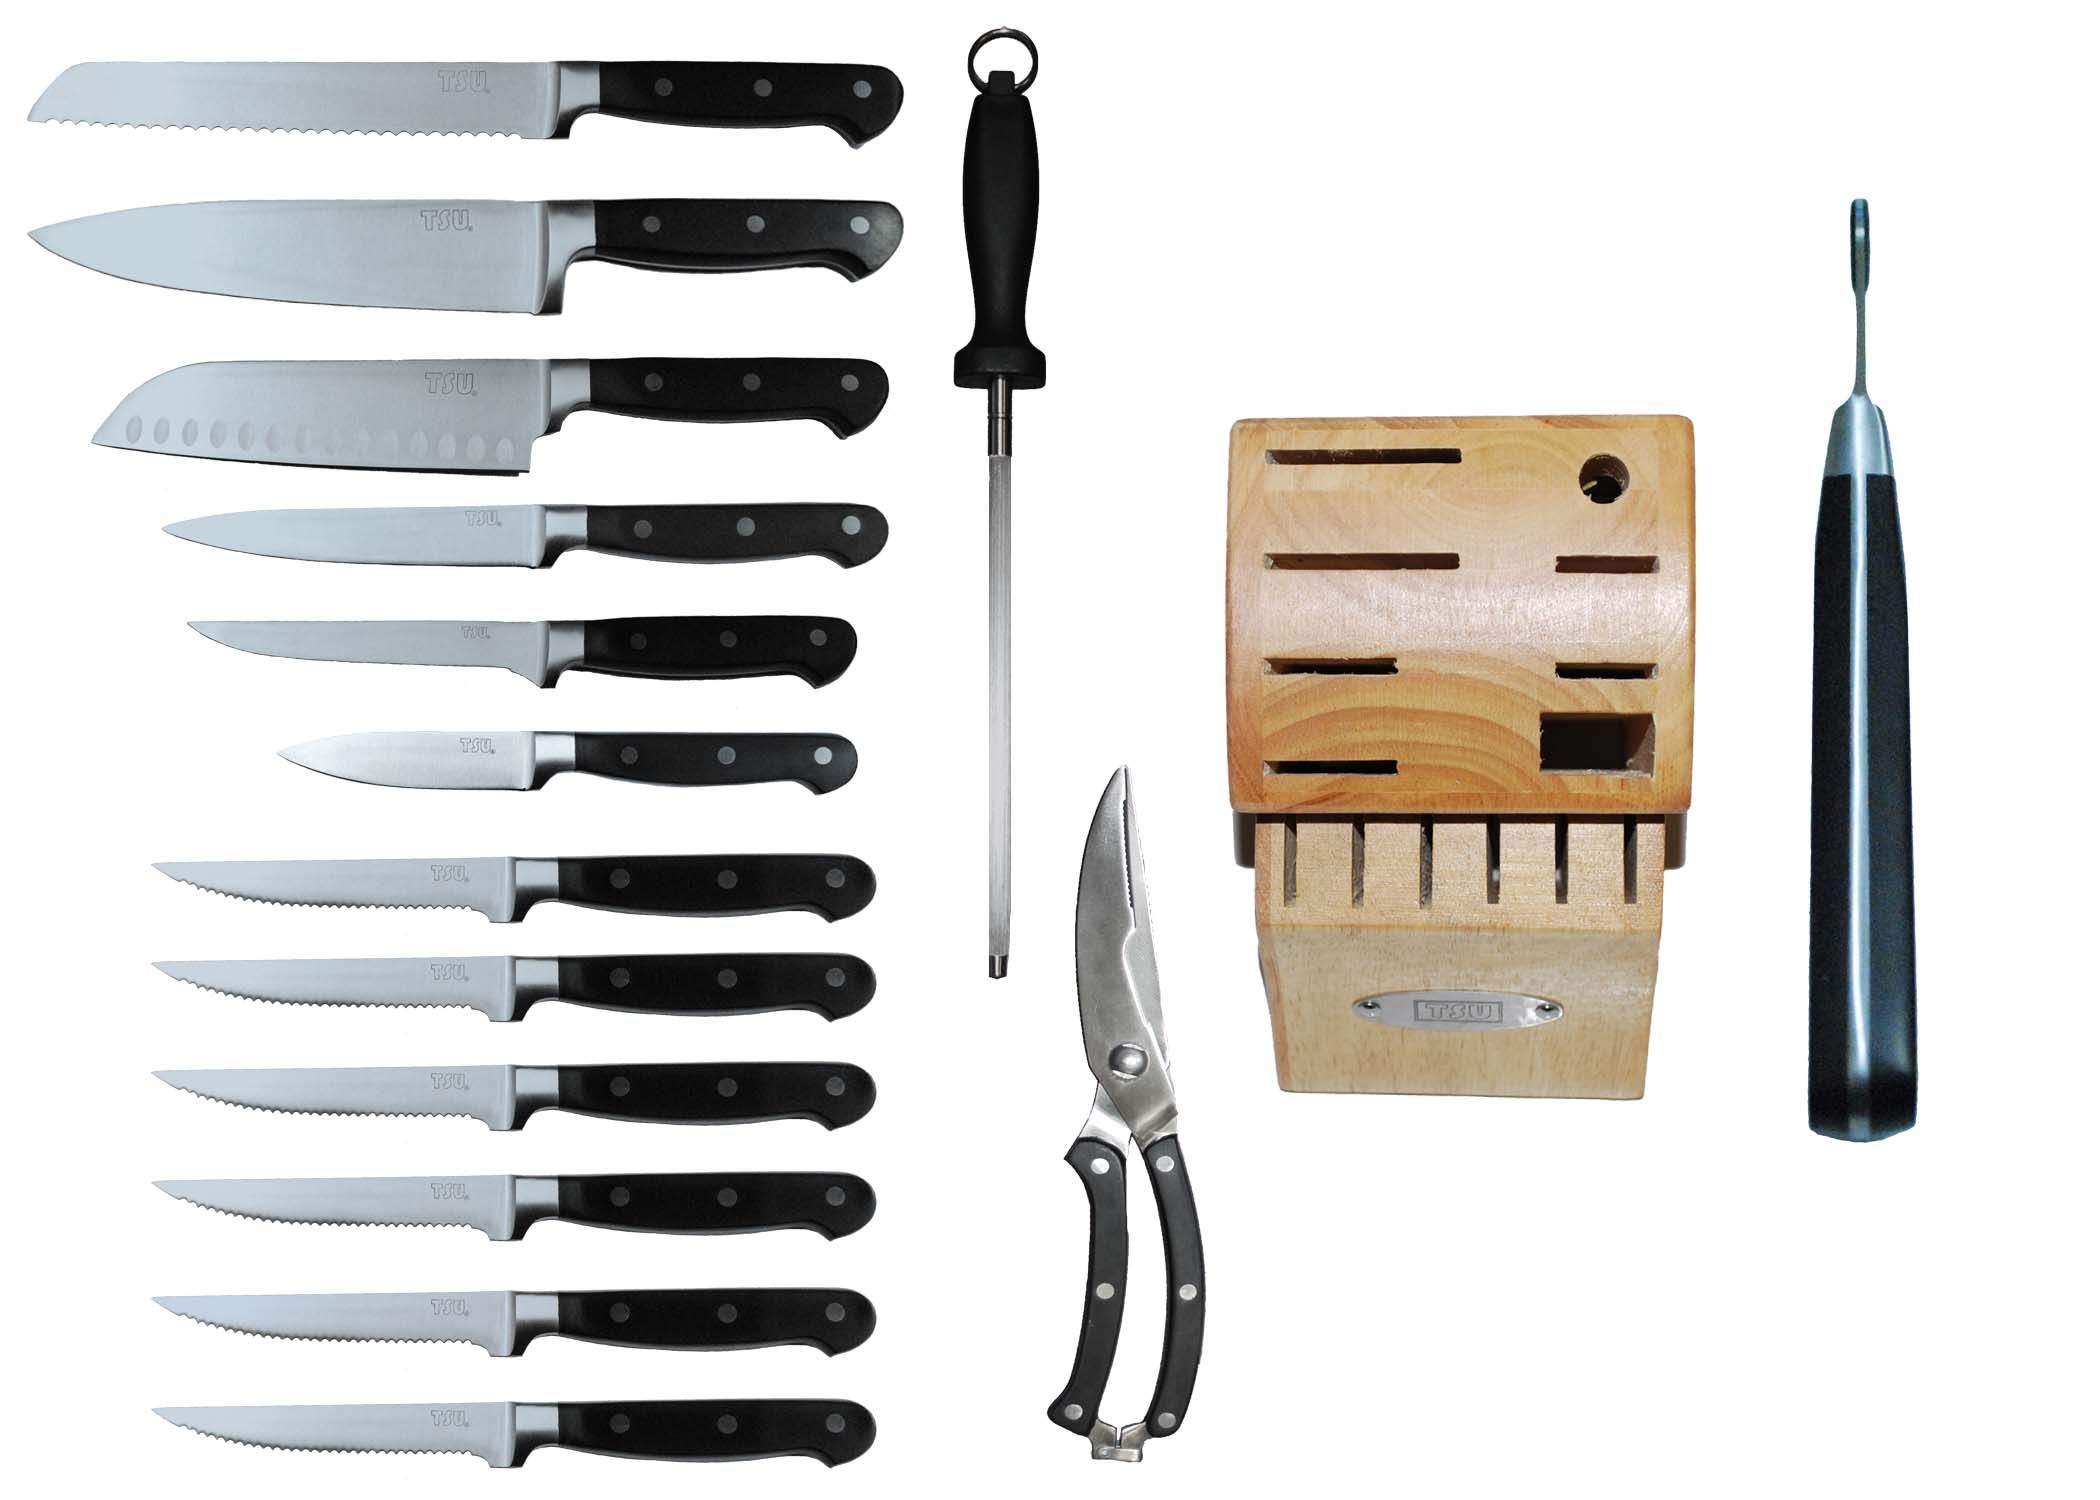 Tsu Piece Kitchen Knife Set With Block Heavenly Swords The Cooks Paring And Carving Fork